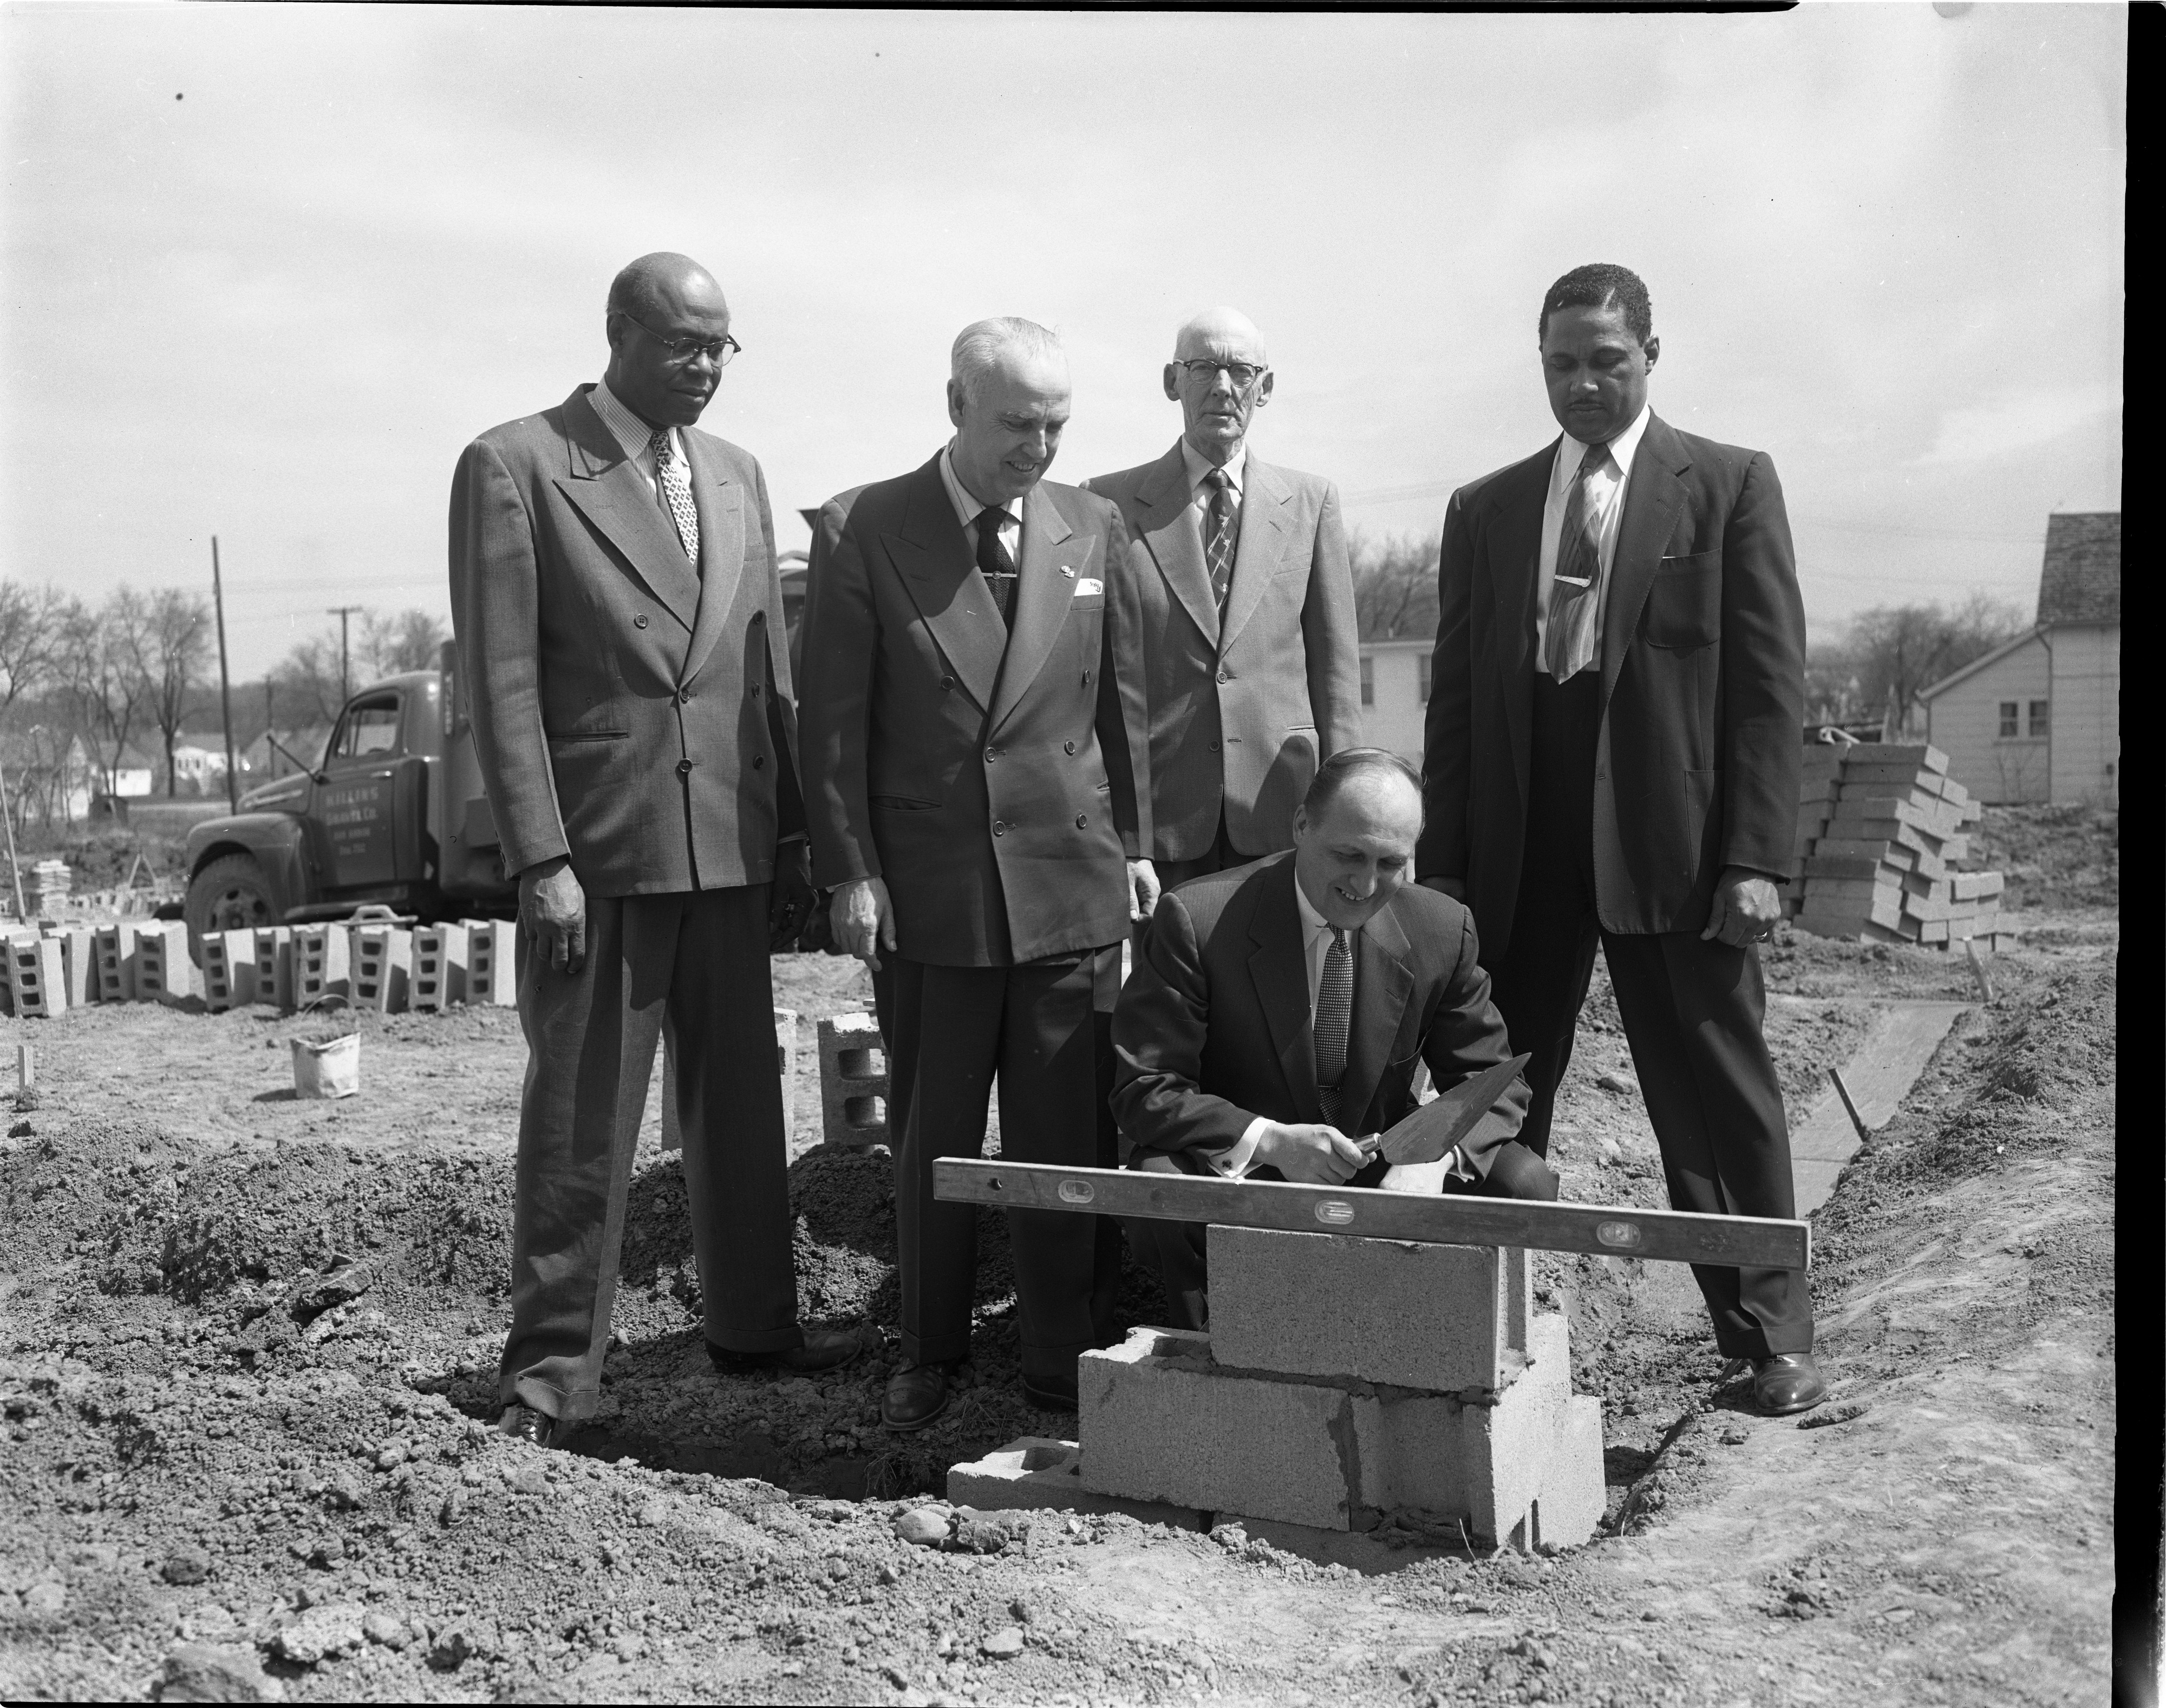 Housing & City Officials Gather To Commemorate The Construction Of The Amos Washington Subdivision, April 1954 image